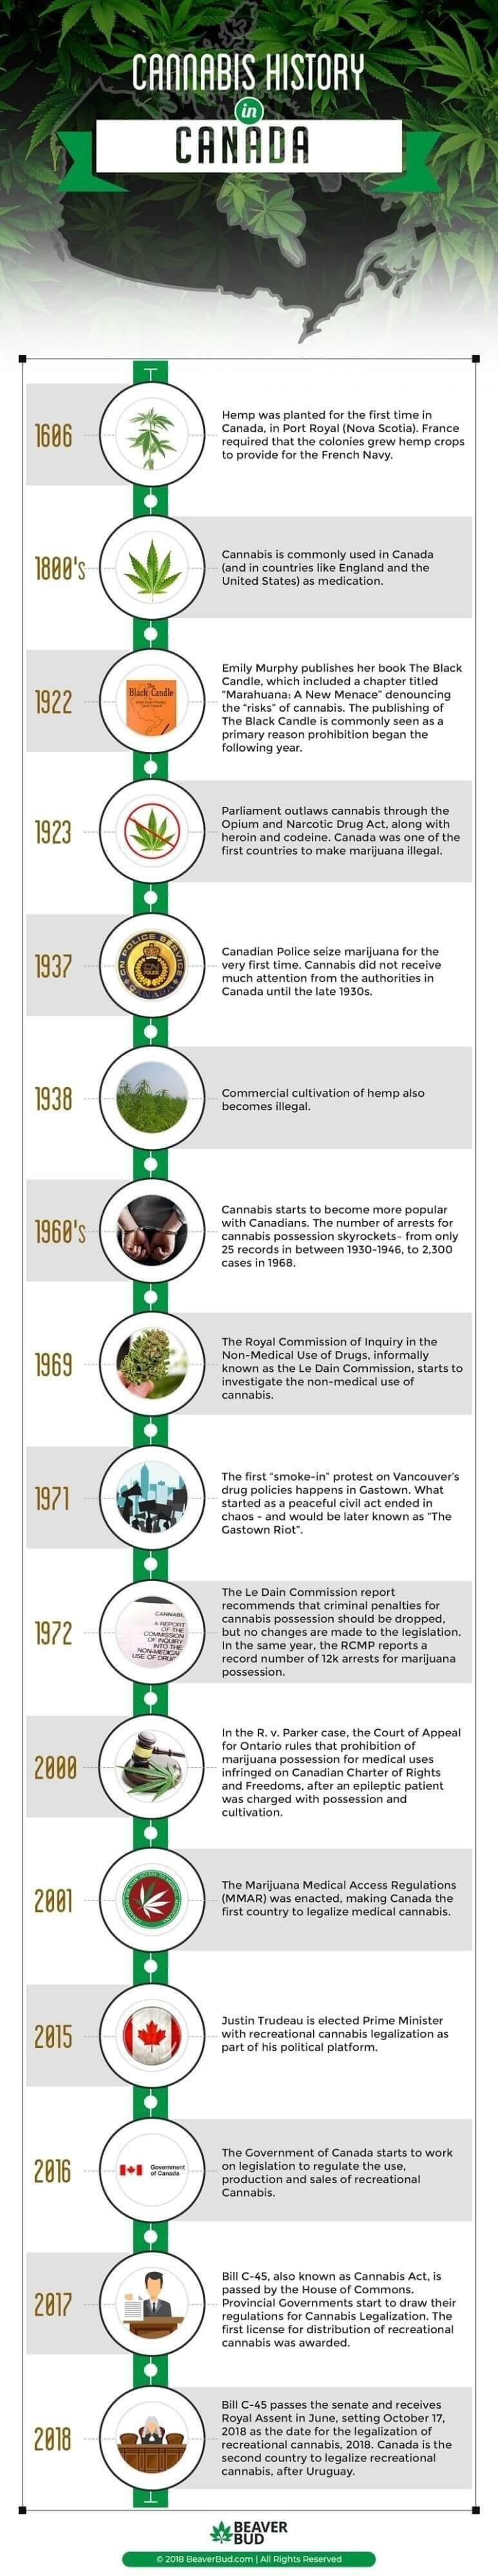 History of Marijuana in Canada